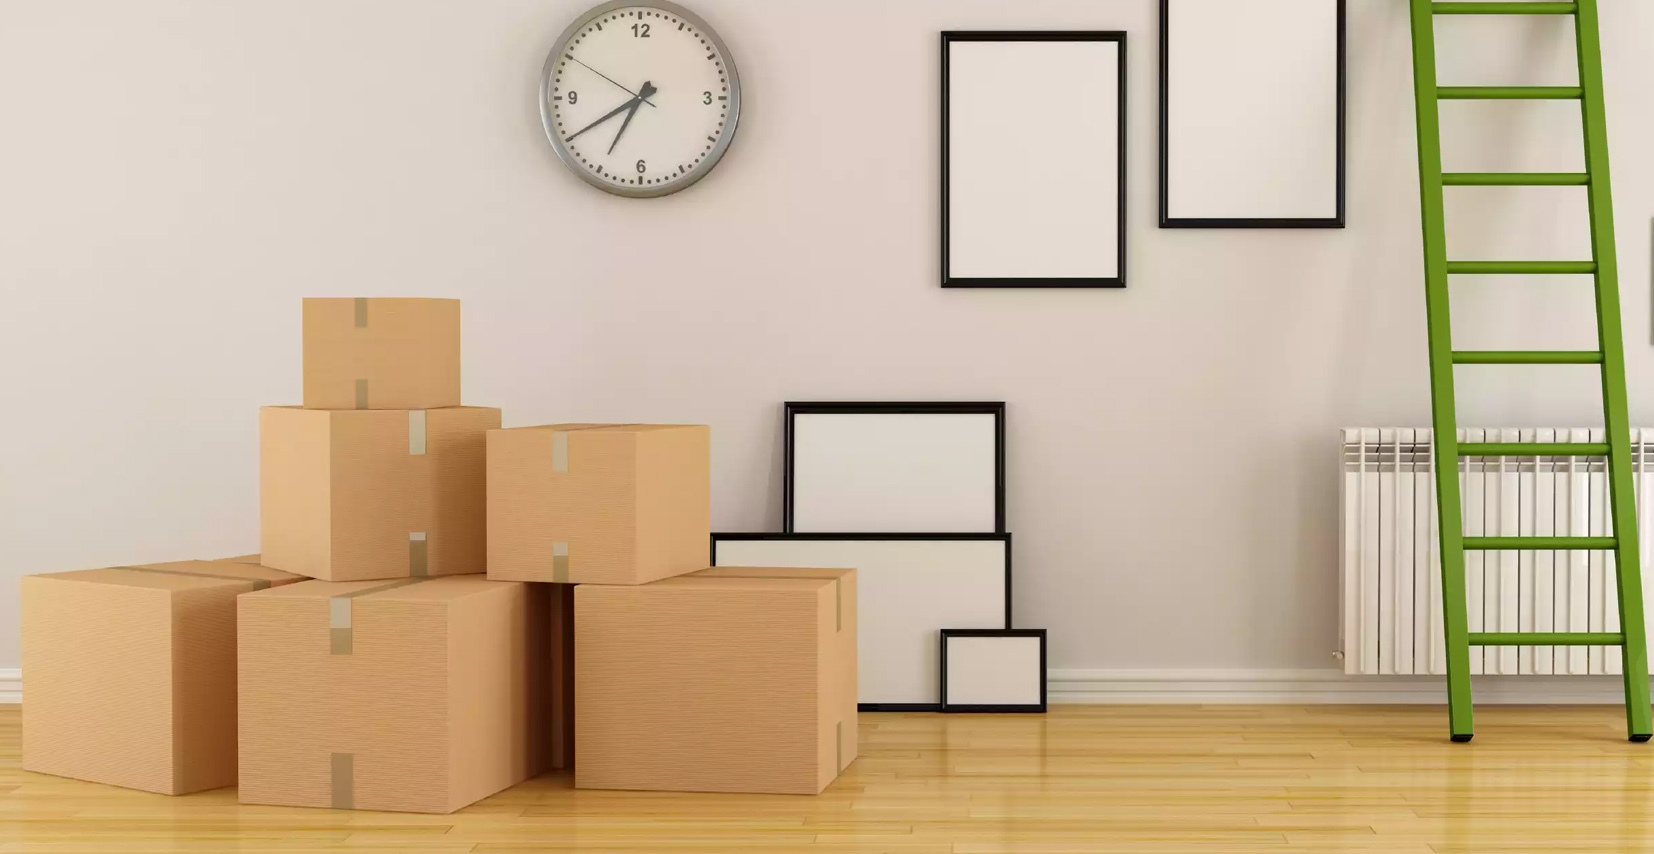 packers and movers in lahore , packers and movers services , packing and moving companies in lahore